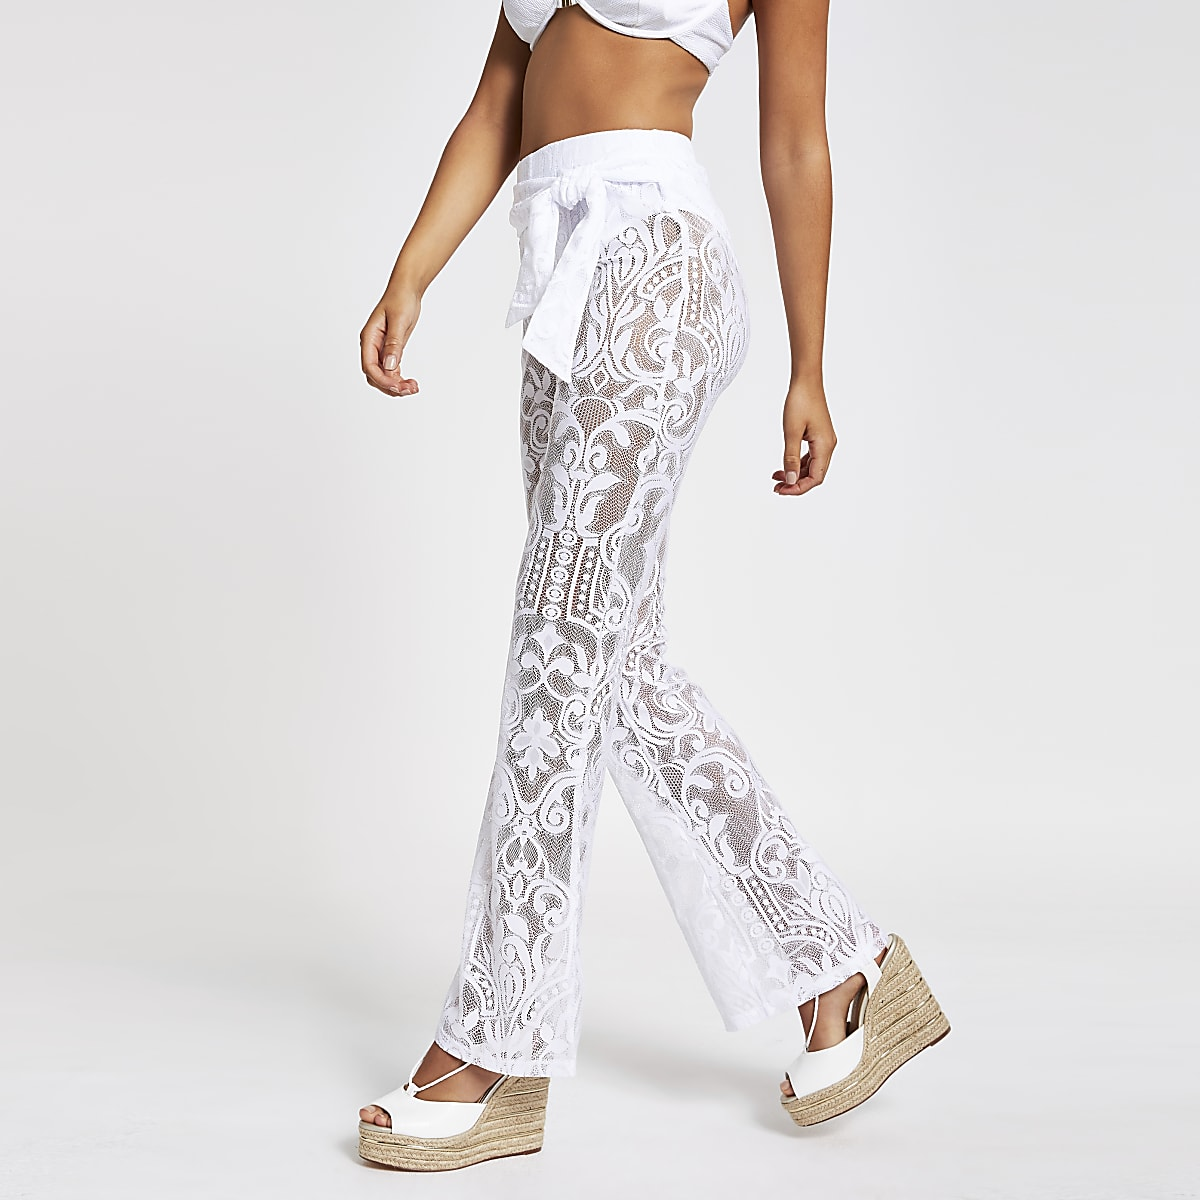 White lace flared tie waist trousers